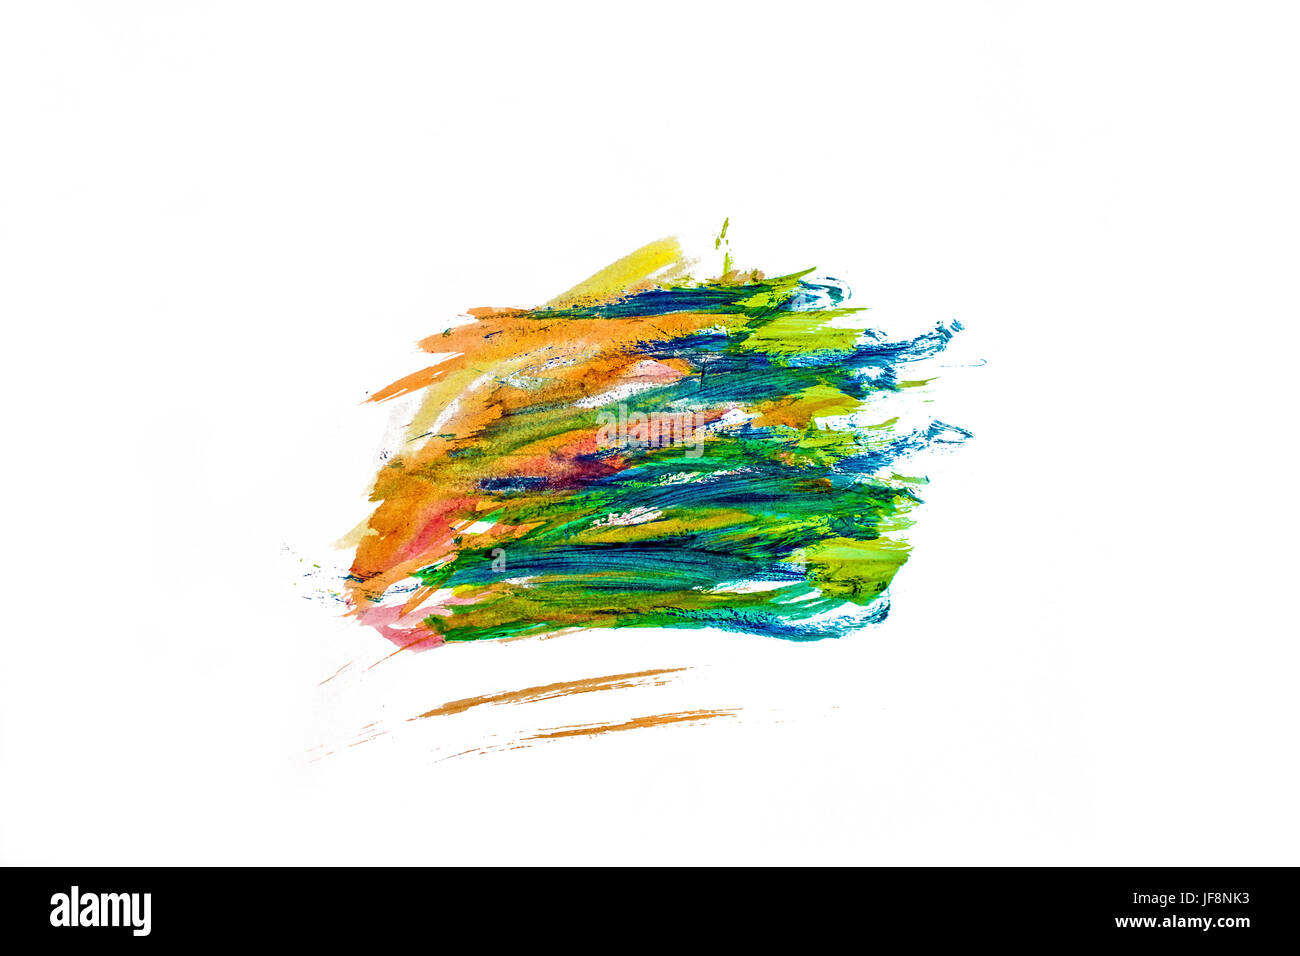 Streaks of color on a white background - Stock Image